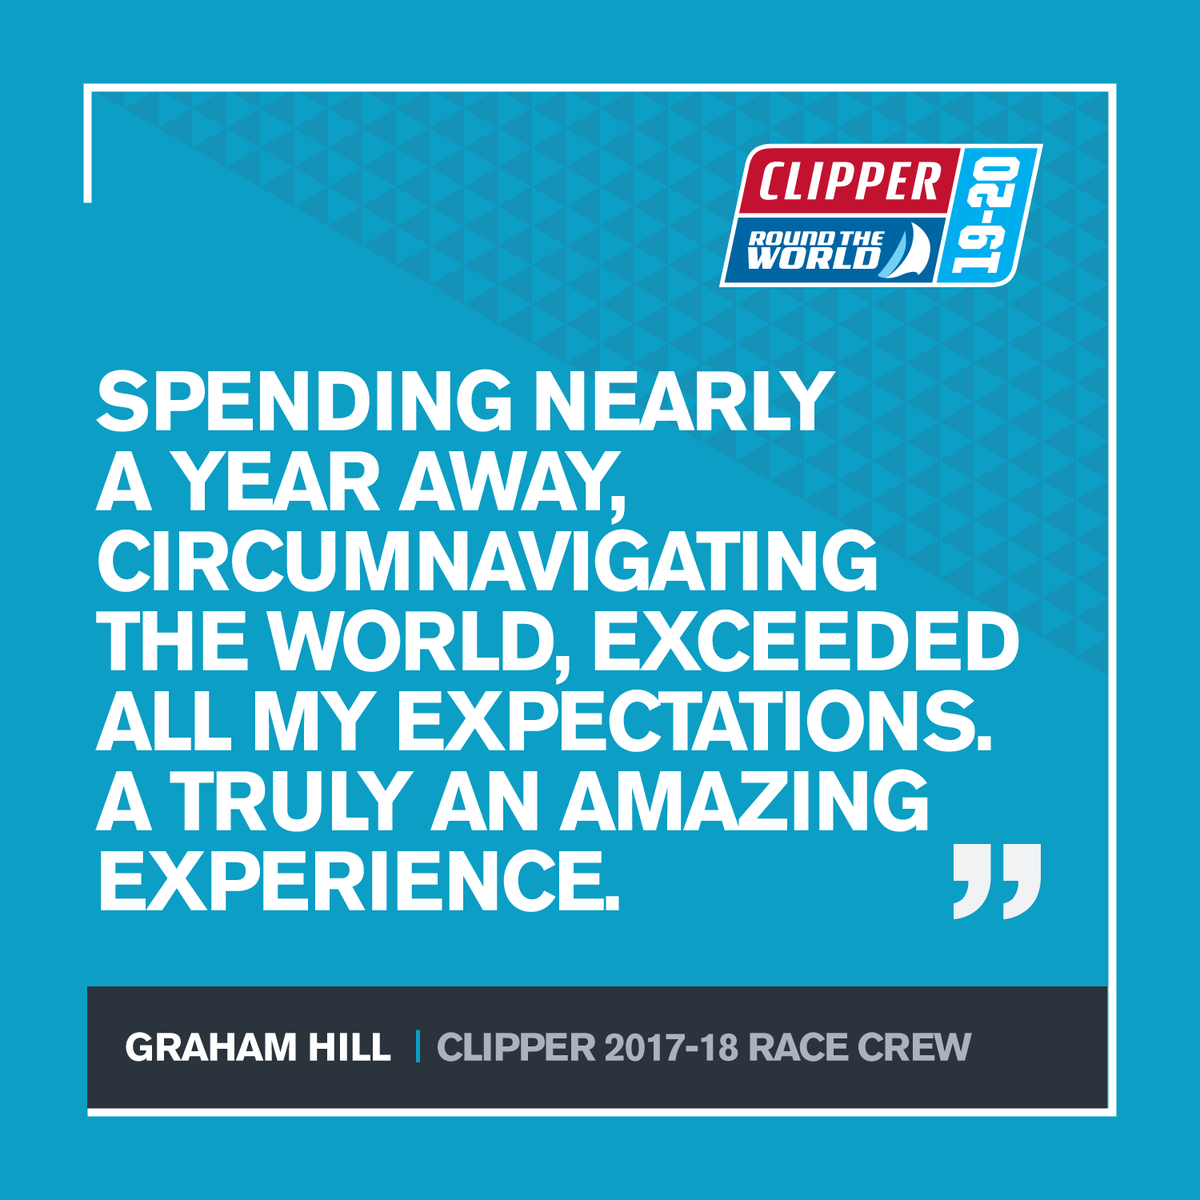 A year ago the Clipper 2017-18 Race concluded in spectacular fashion. Today we would like to celebrate all our remarkable Race Crew who have competed in the #ClipperRace and ask what one piece of advice they would share with crew preparing to take on the 2019-20 edition?